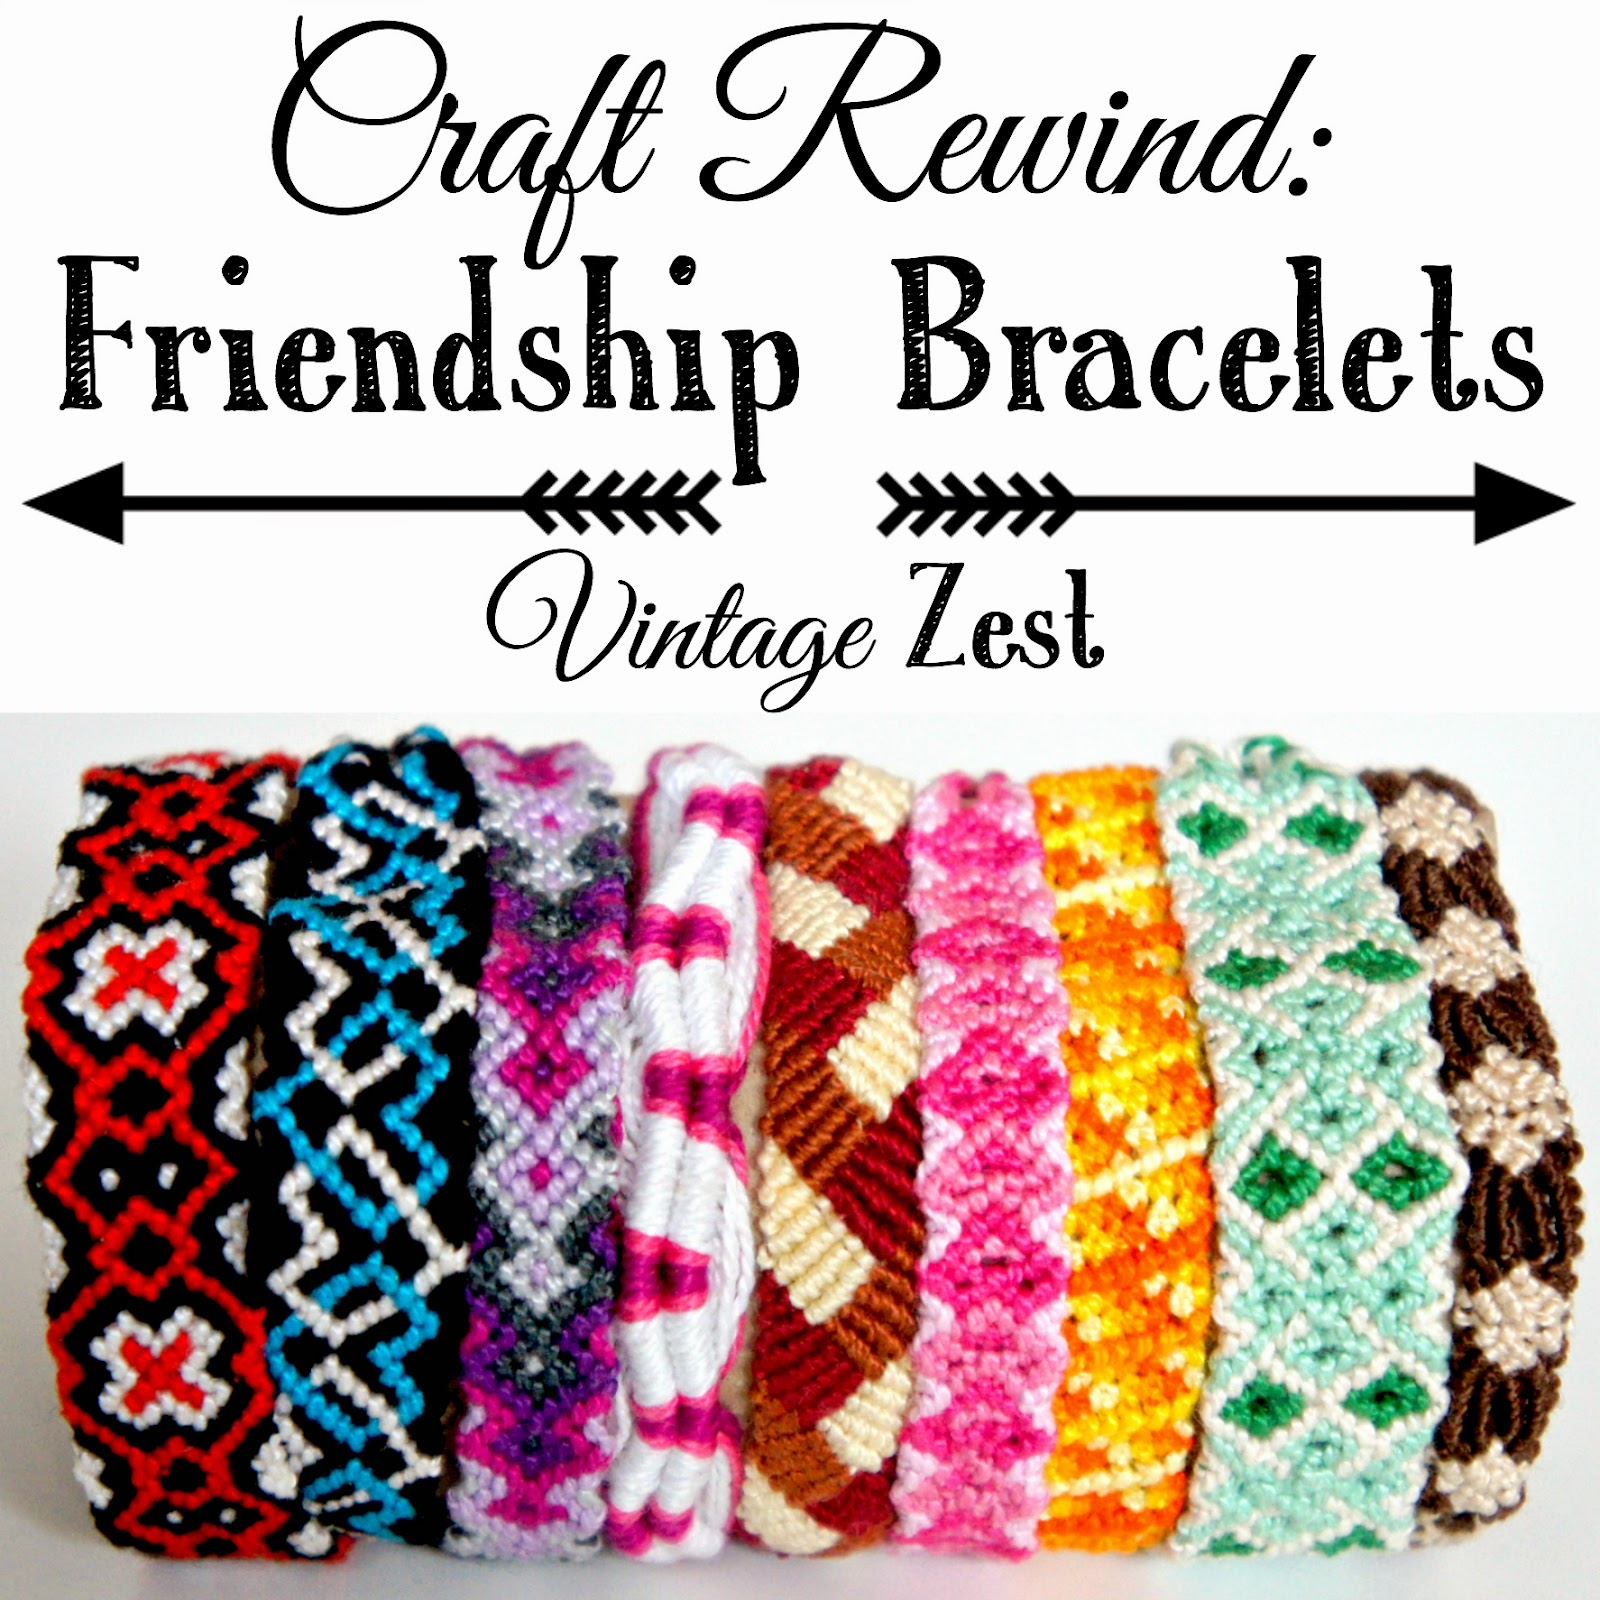 Craft Rewind: Friendship Bracelets on Diane's Vintage Zest!